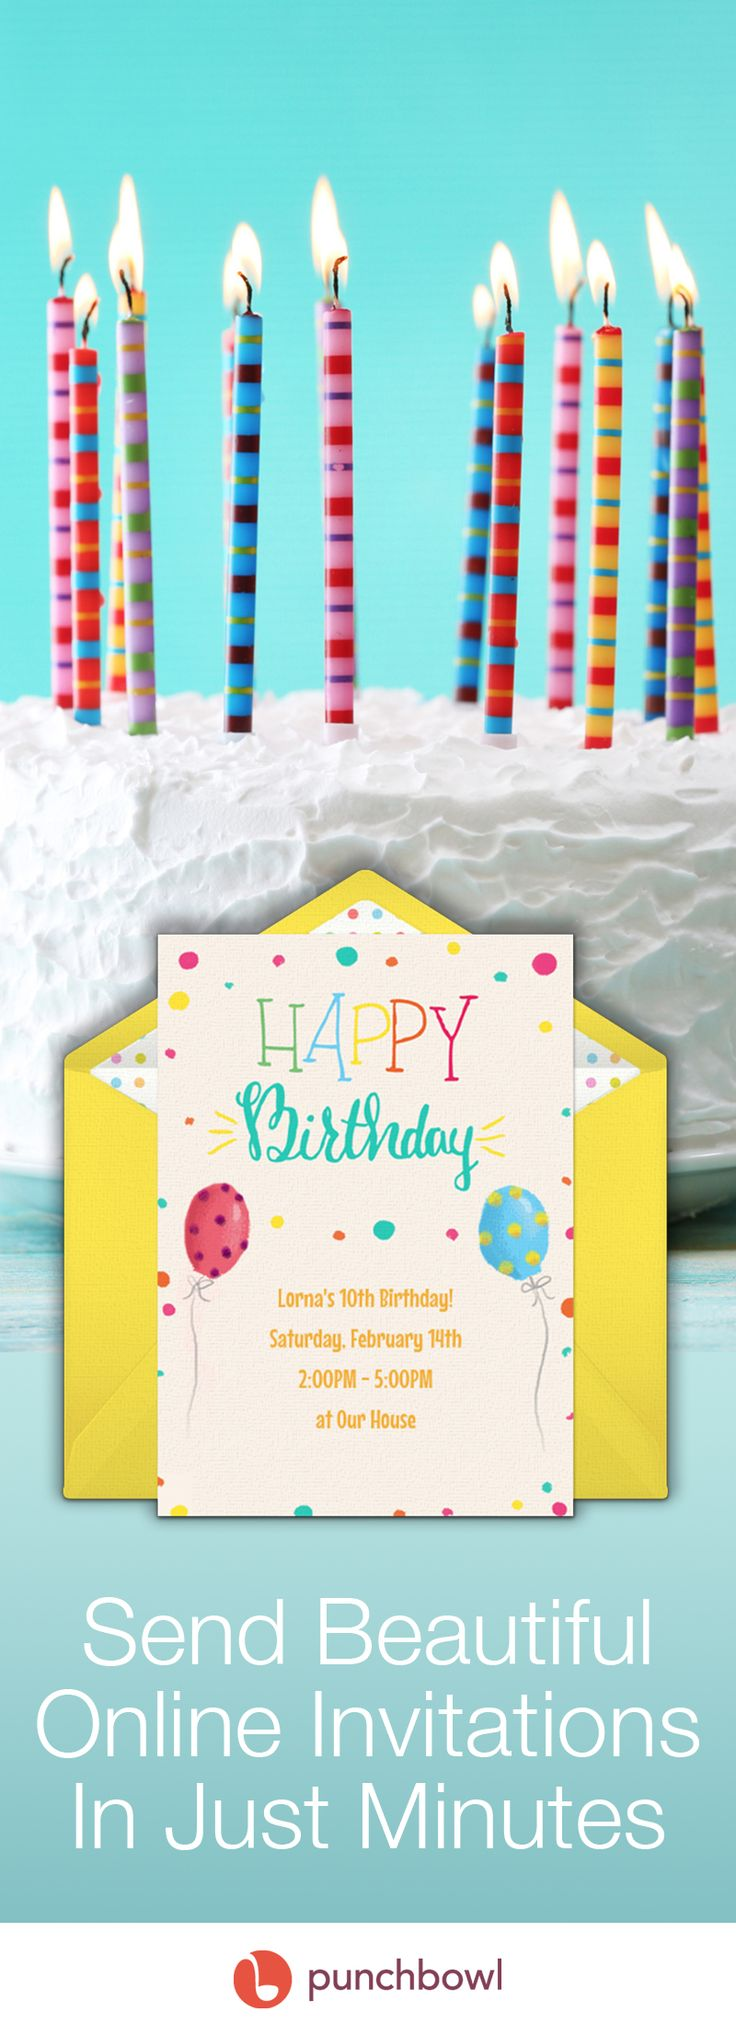 Send Online Invitations Make A Greeting Card To Print